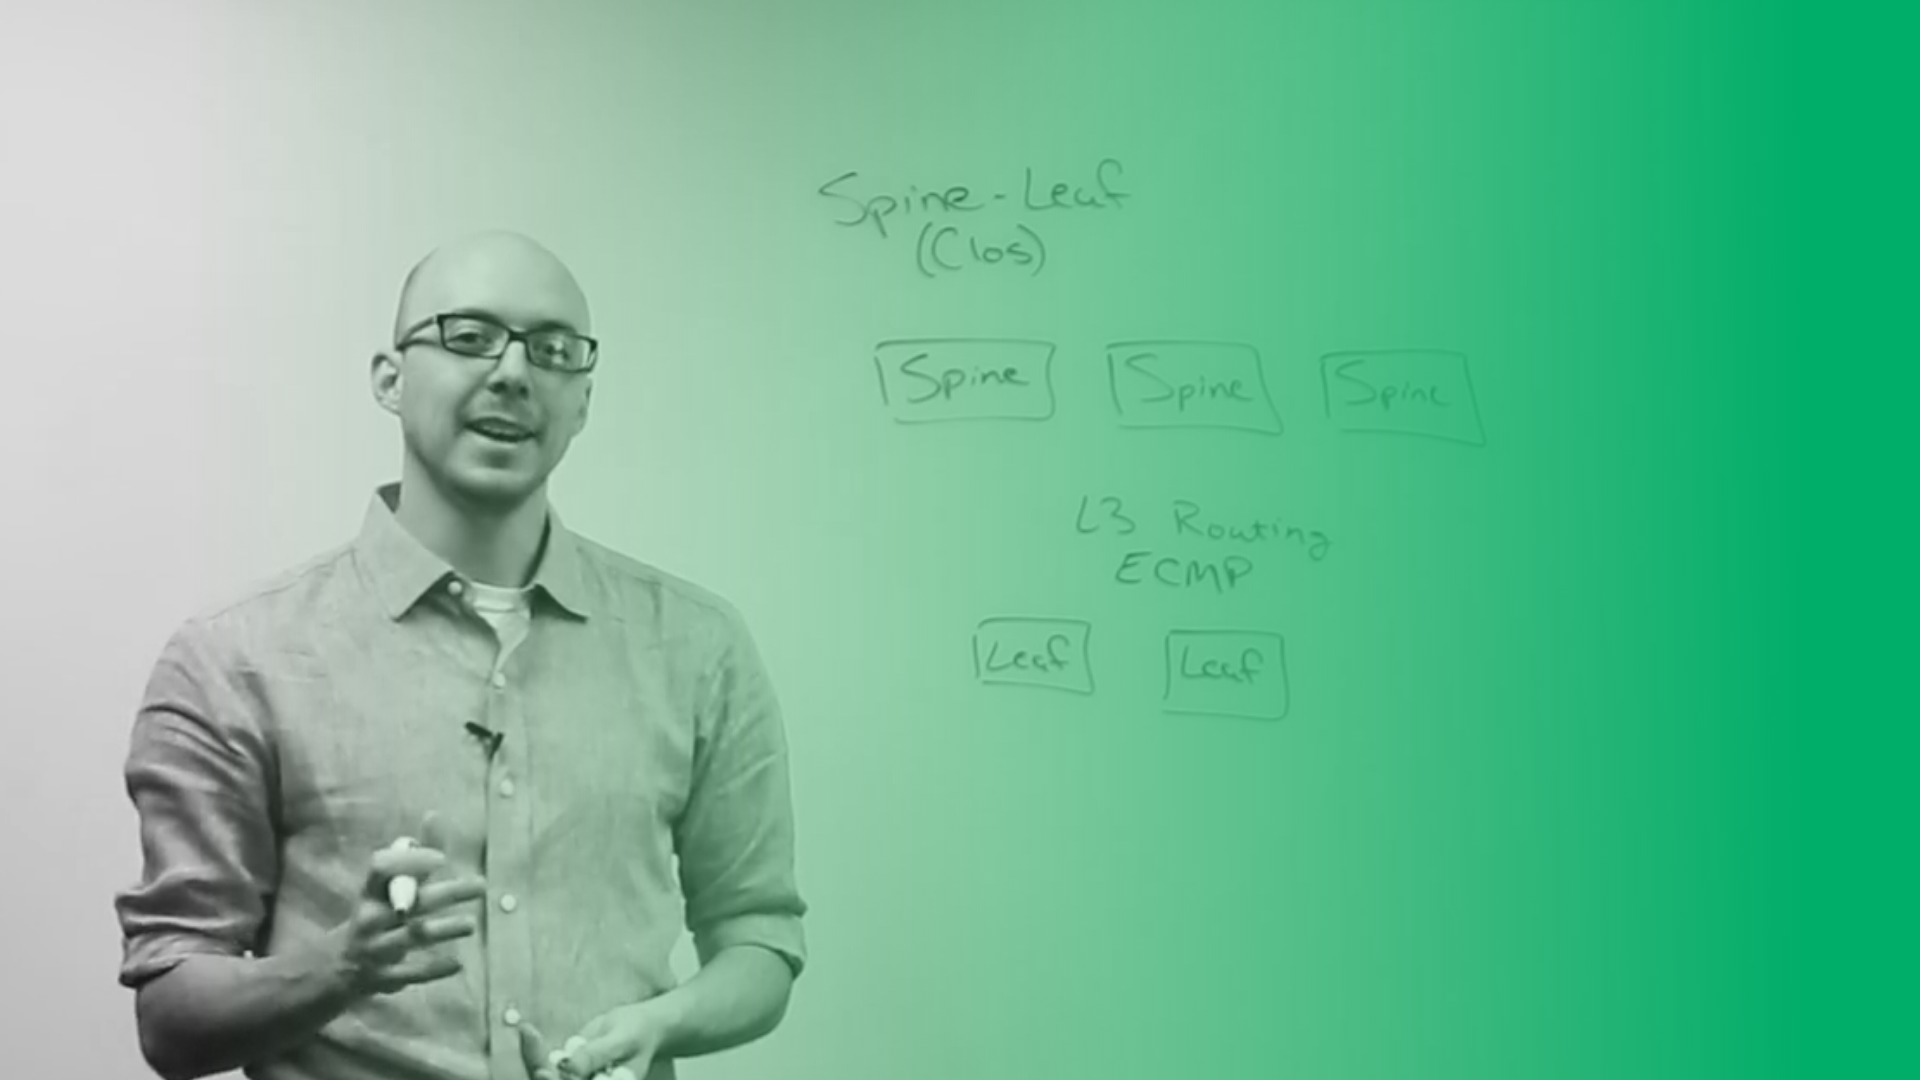 Web-scale Whiteboarding: OpenStack Overview 04 - Spine Leaf